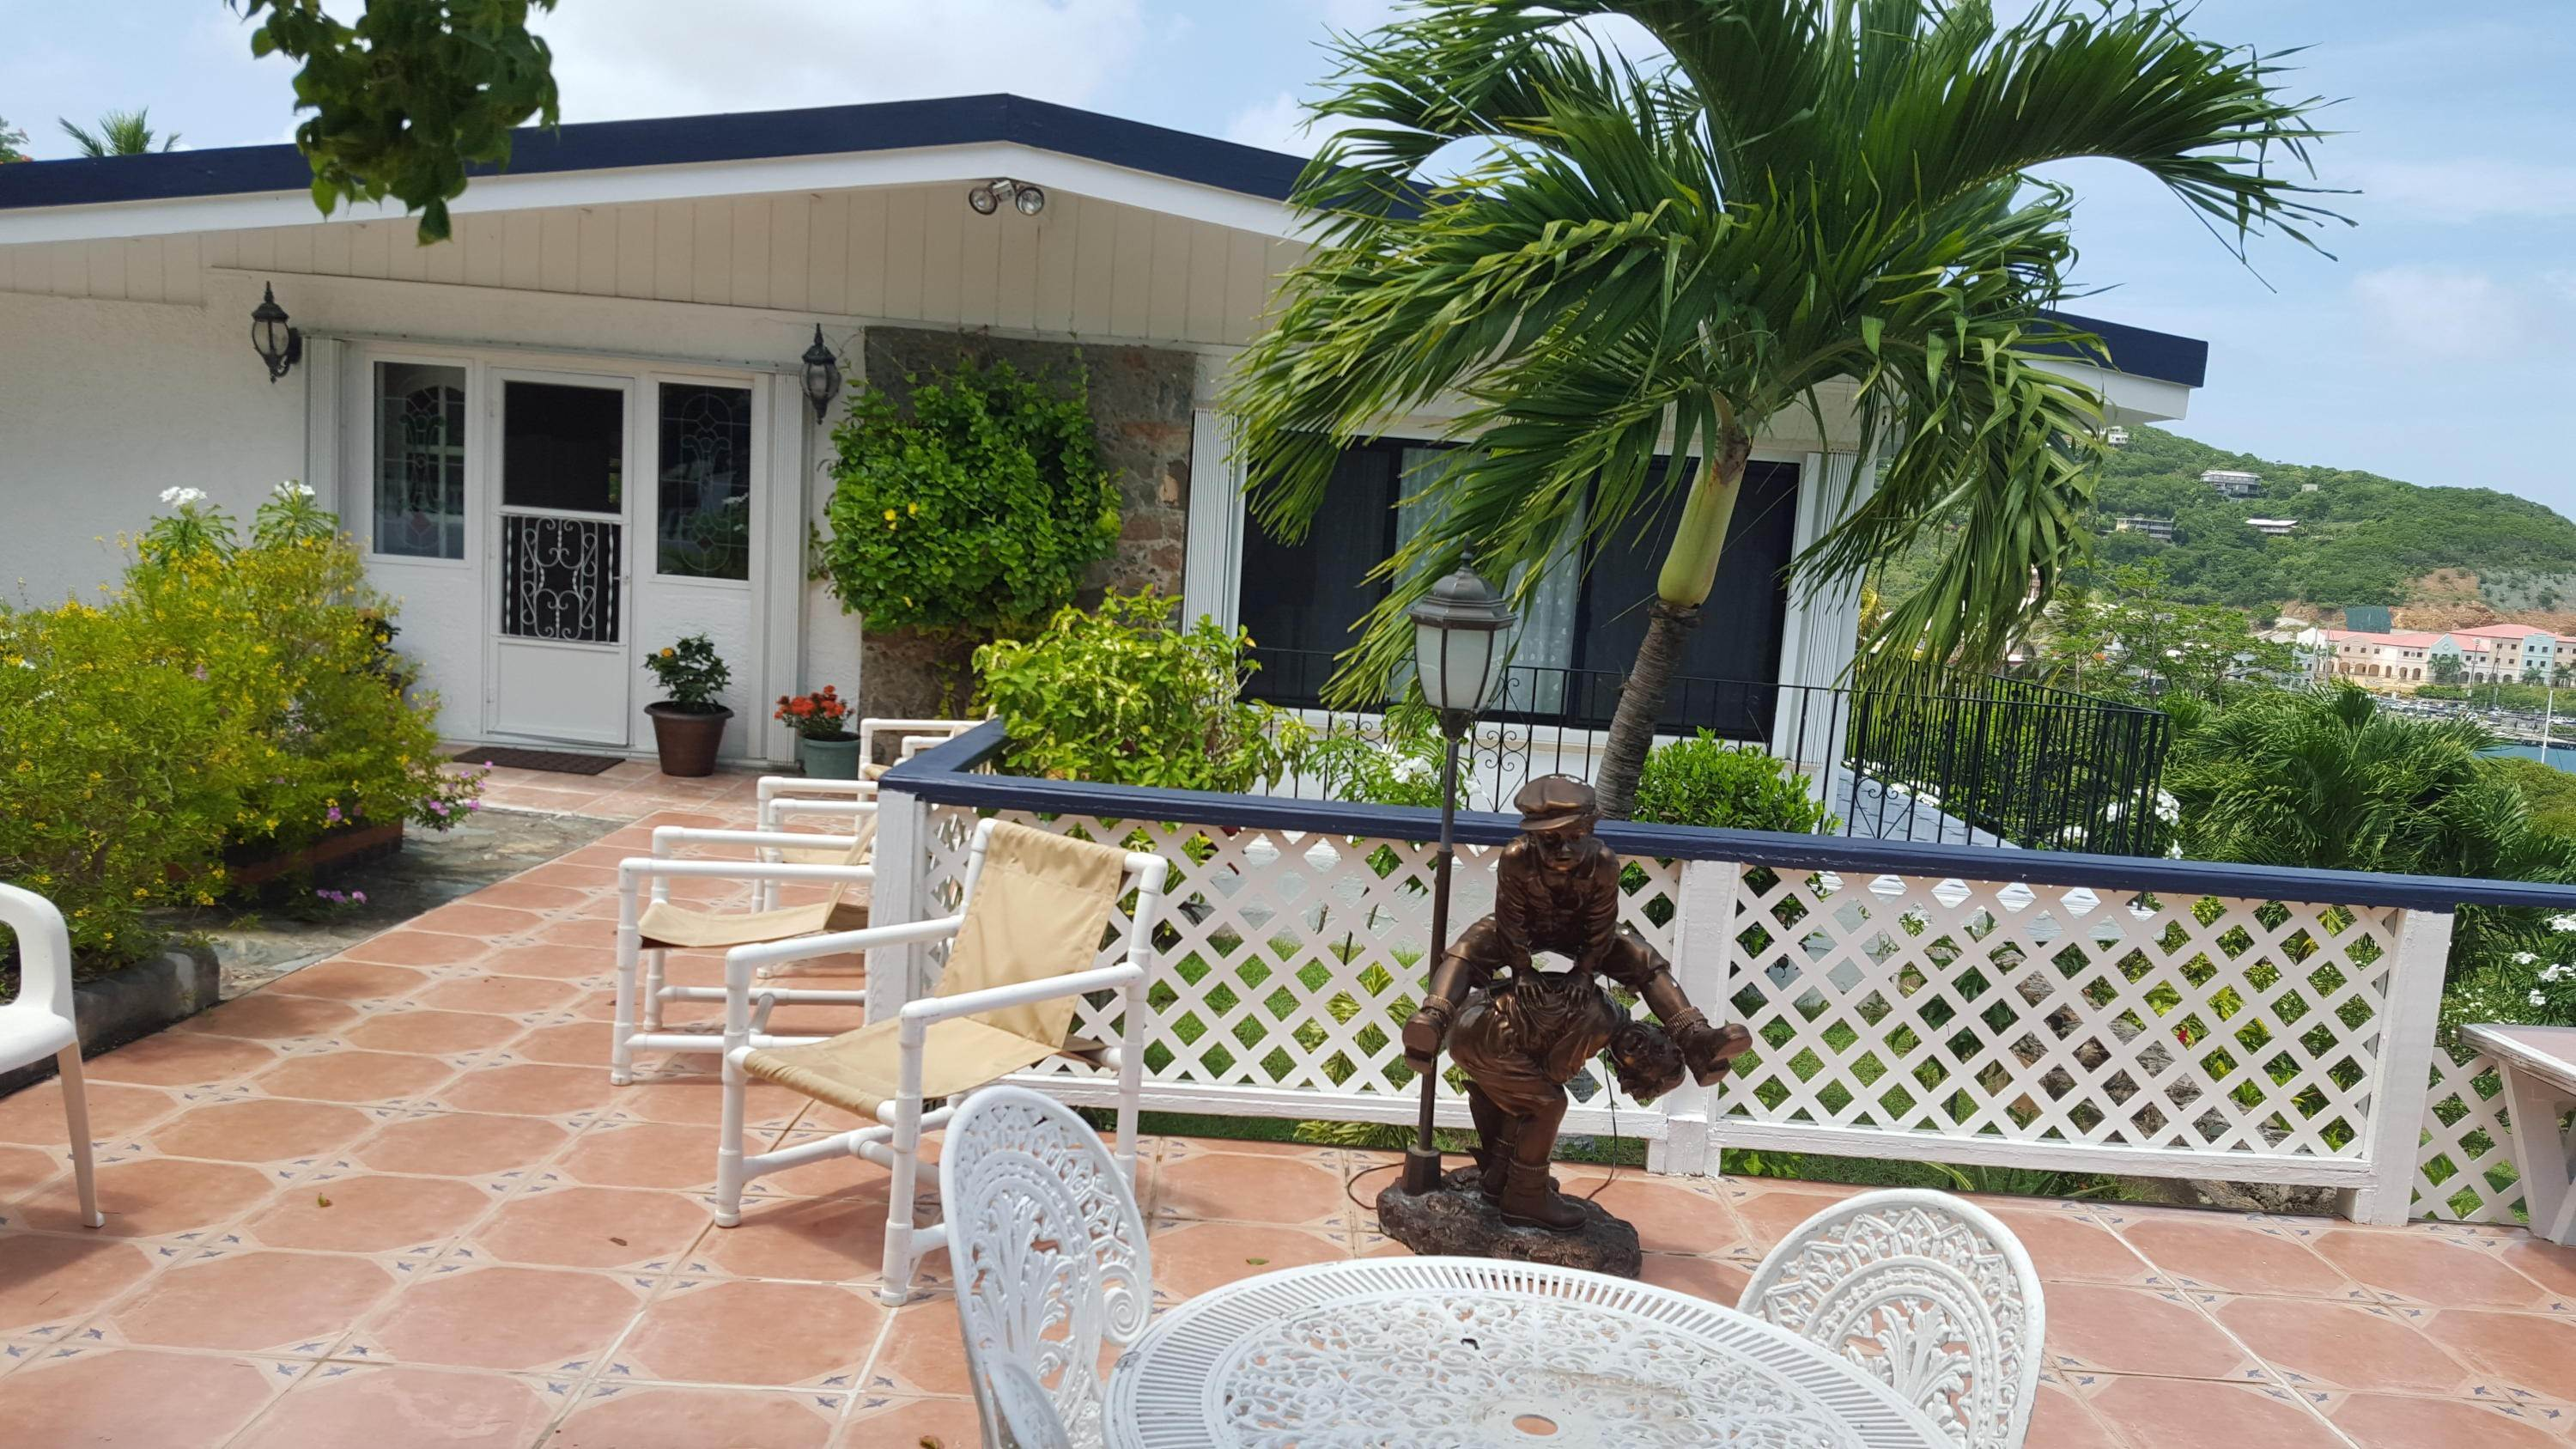 Single Family Homes for Sale at 9-34 Nazareth RH St Thomas, Virgin Islands 00802 United States Virgin Islands